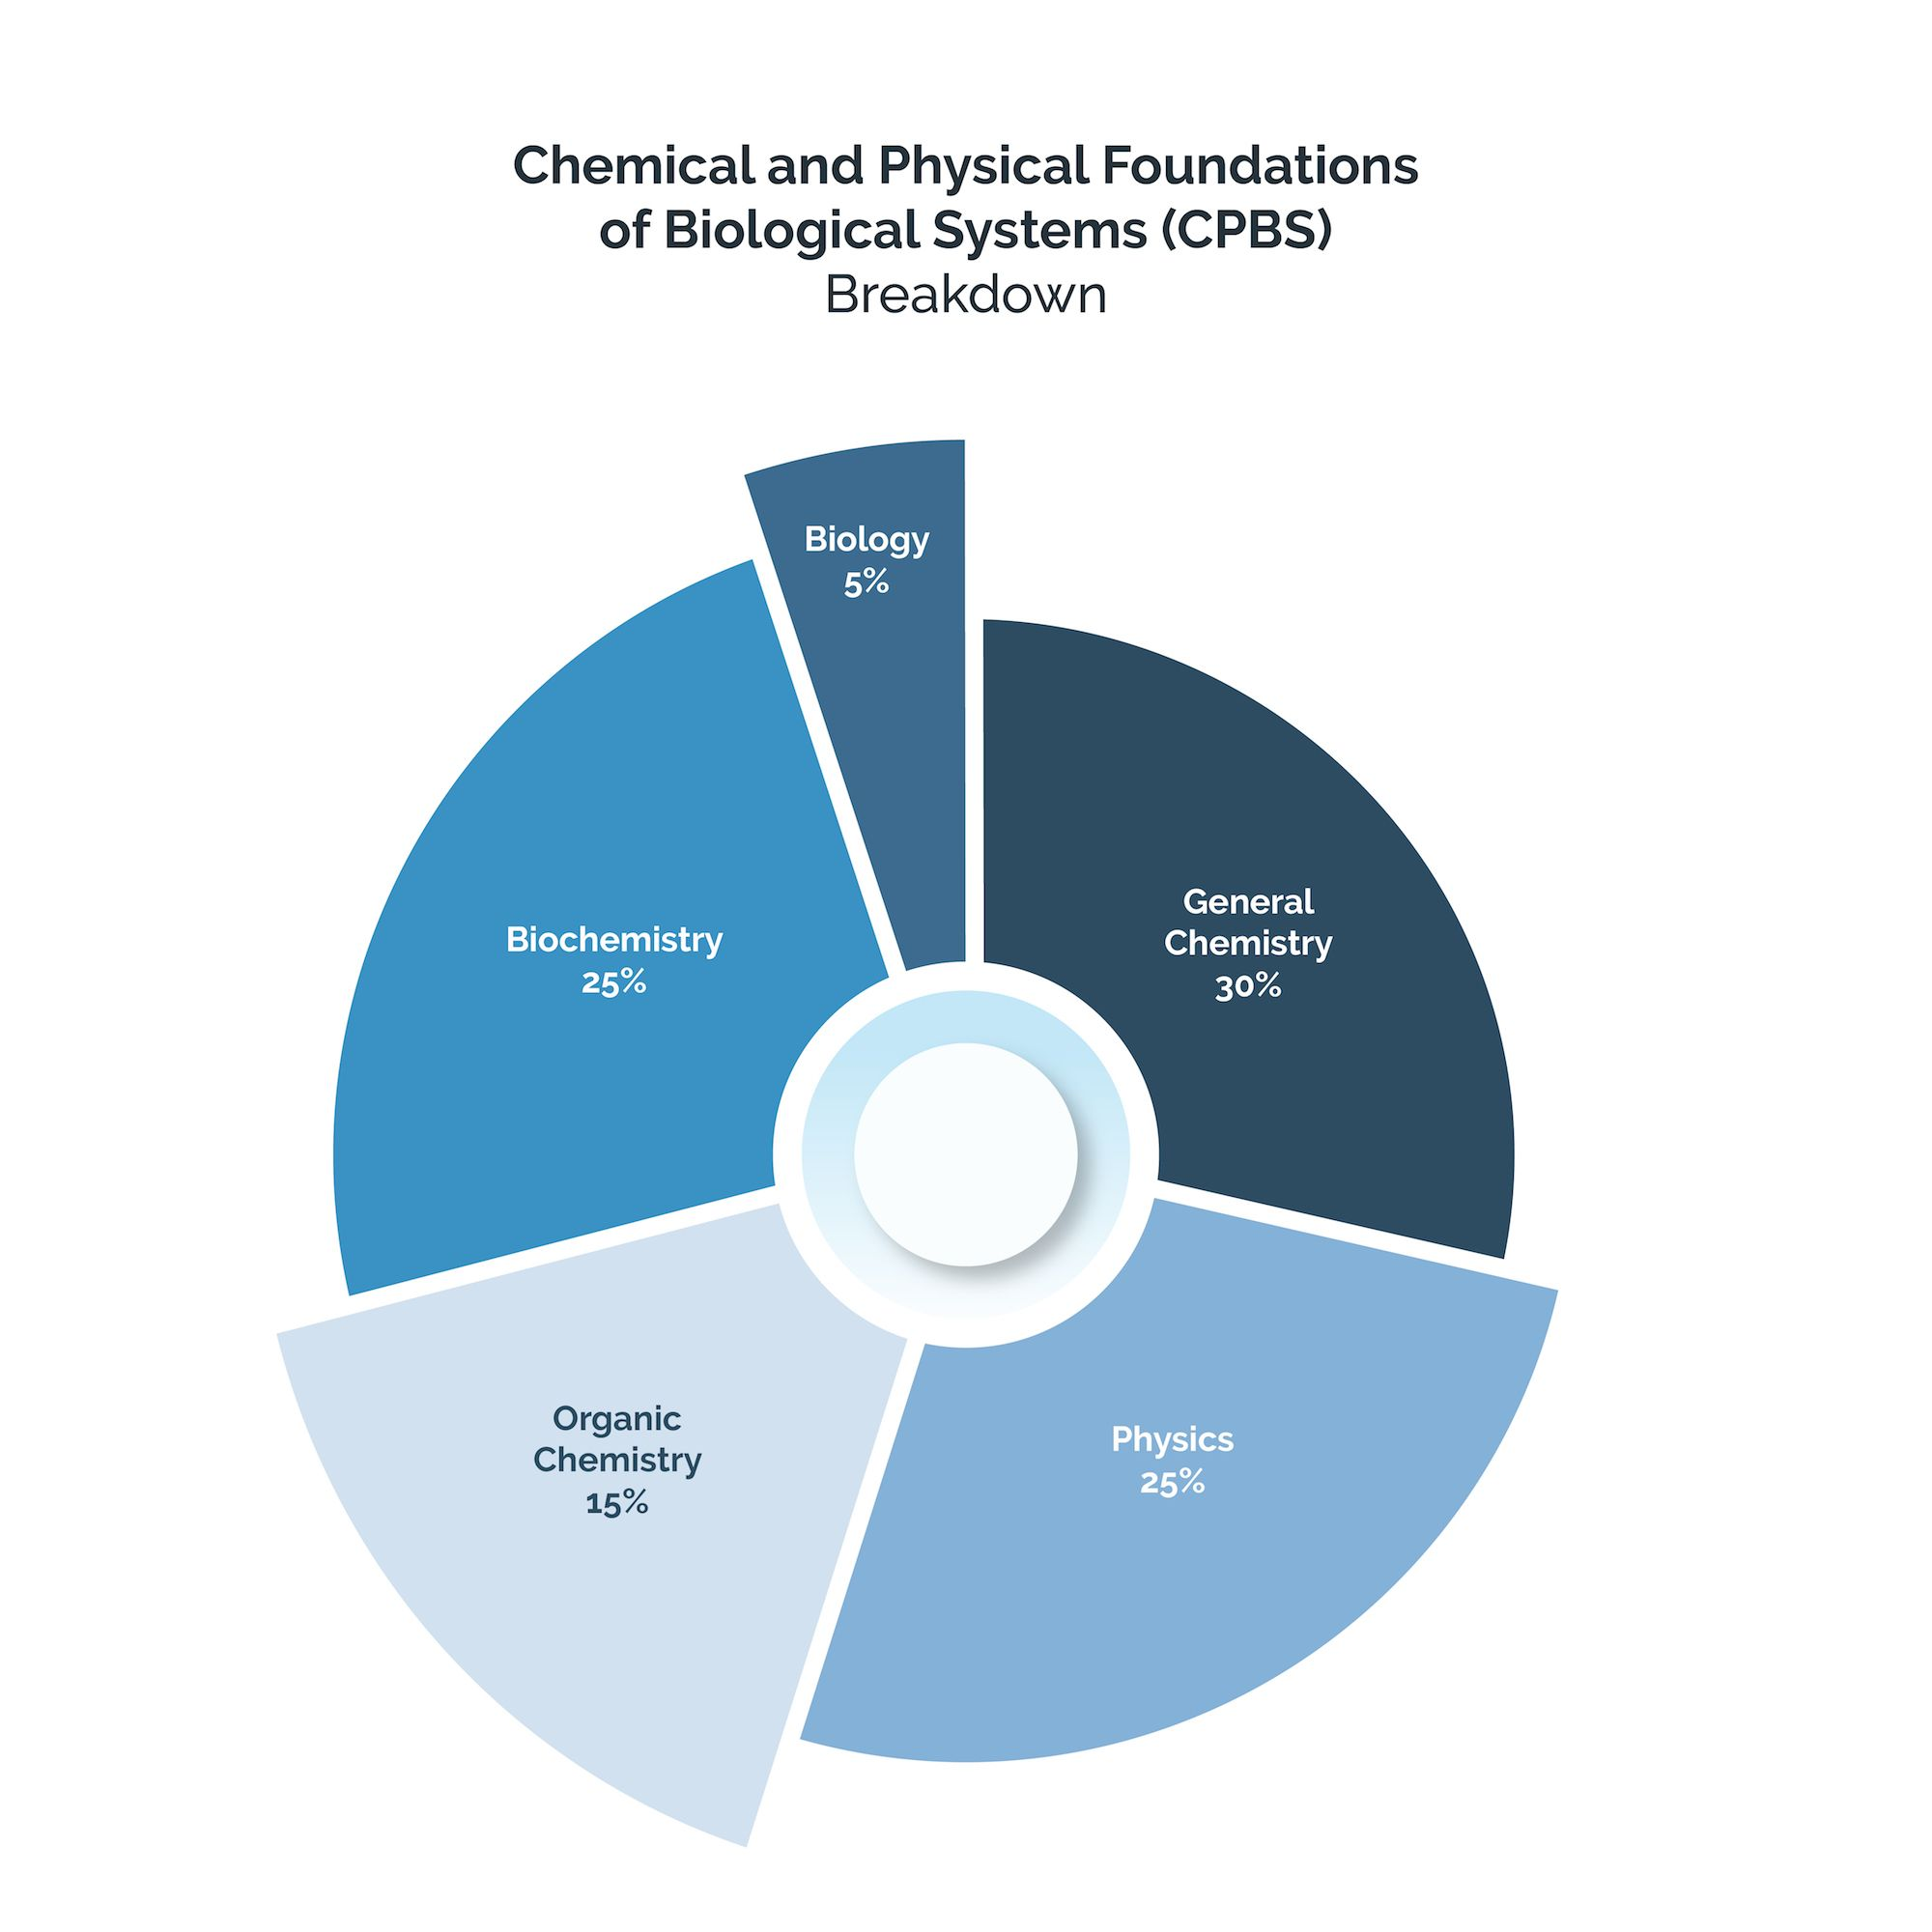 Chemical and Physical Foundations of Biological Systems